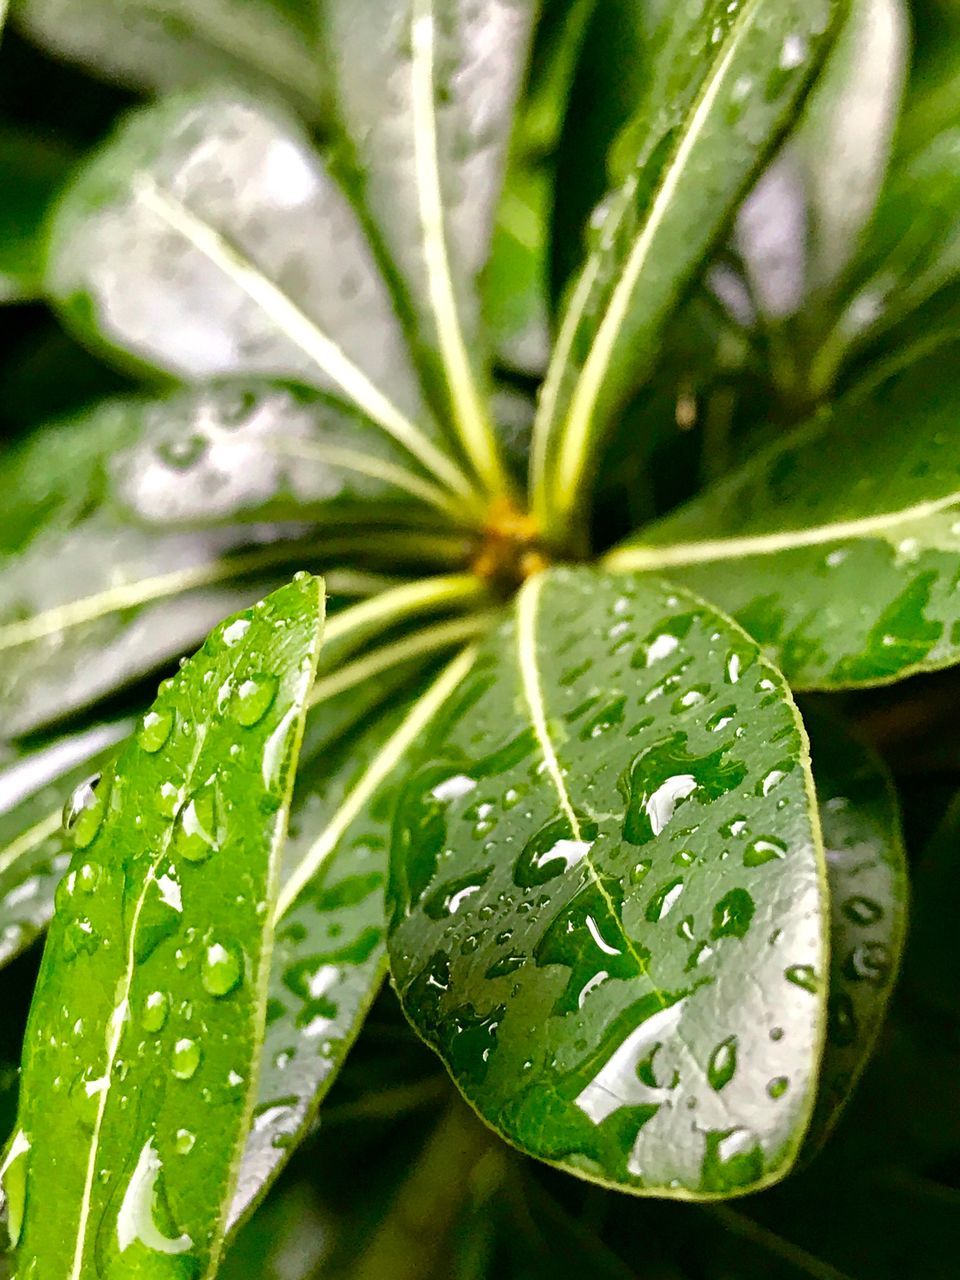 leaf, drop, water, green color, wet, nature, close-up, growth, beauty in nature, plant, freshness, no people, raindrop, day, focus on foreground, outdoors, fragility